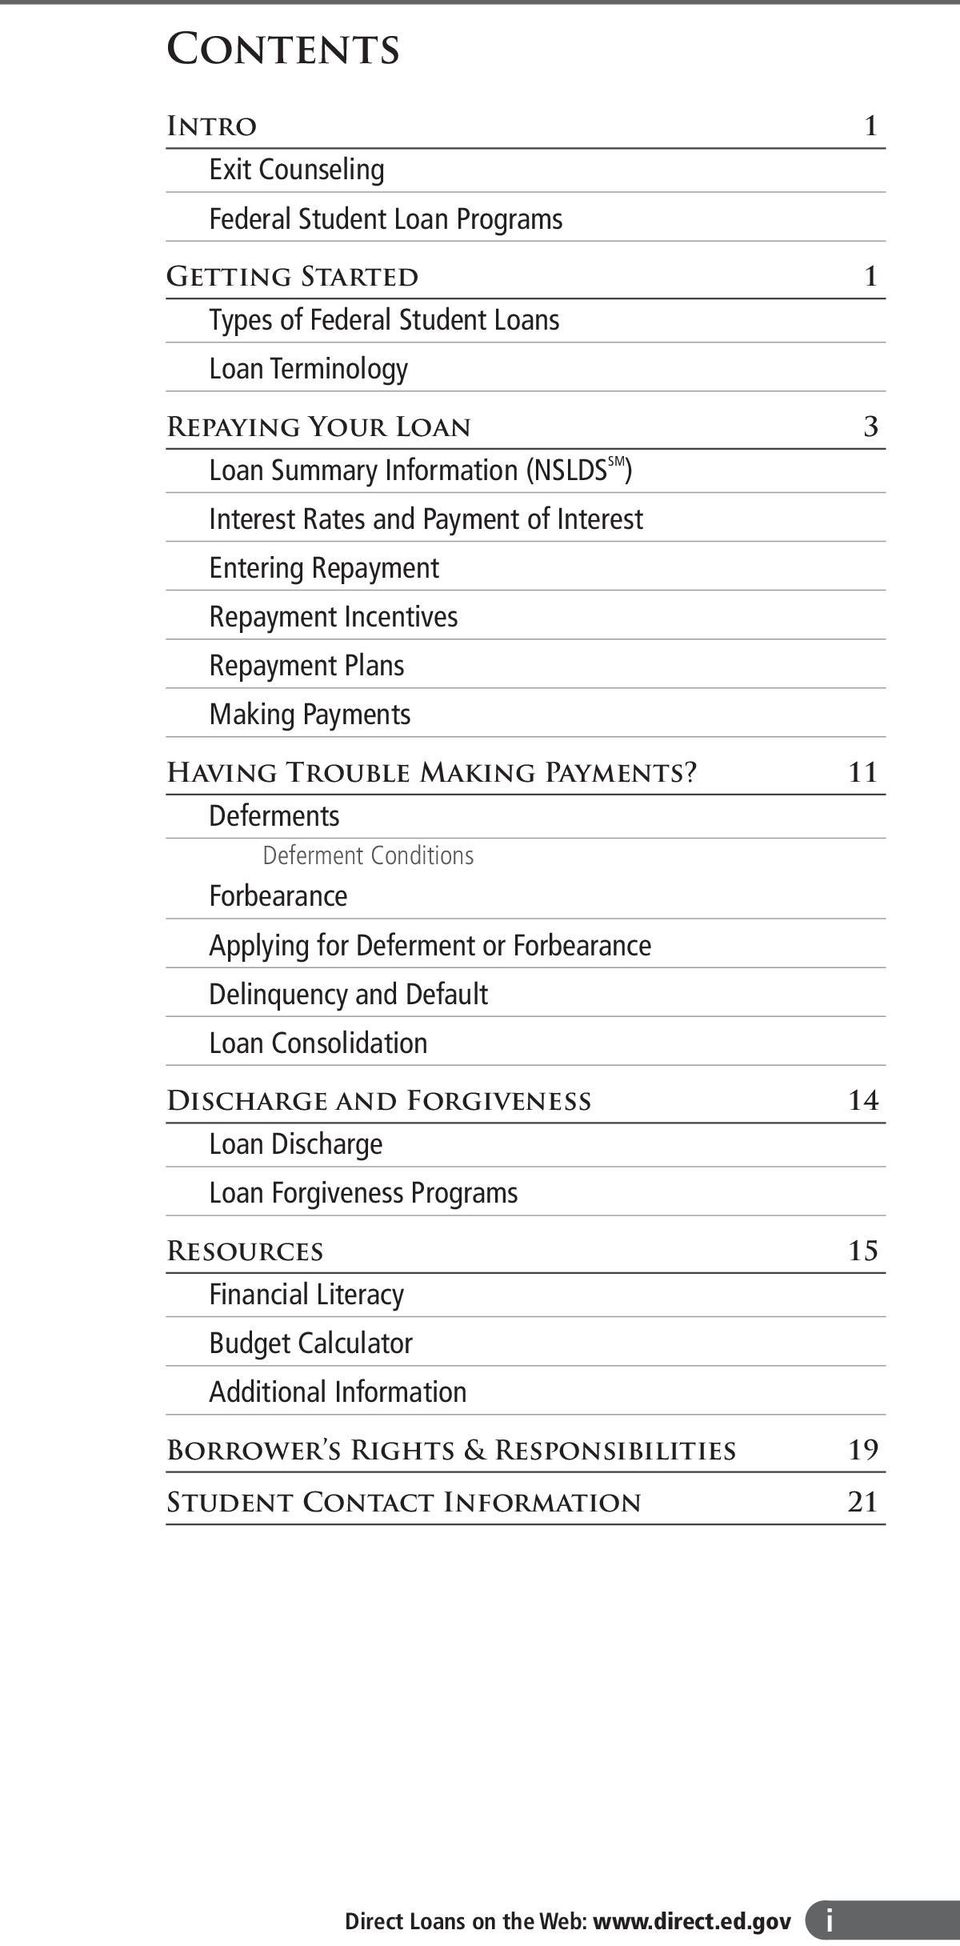 11 Deferments Deferment Conditions Forbearance Applying for Deferment or Forbearance Delinquency and Default Loan Consolidation Discharge and Forgiveness 14 Loan Discharge Loan